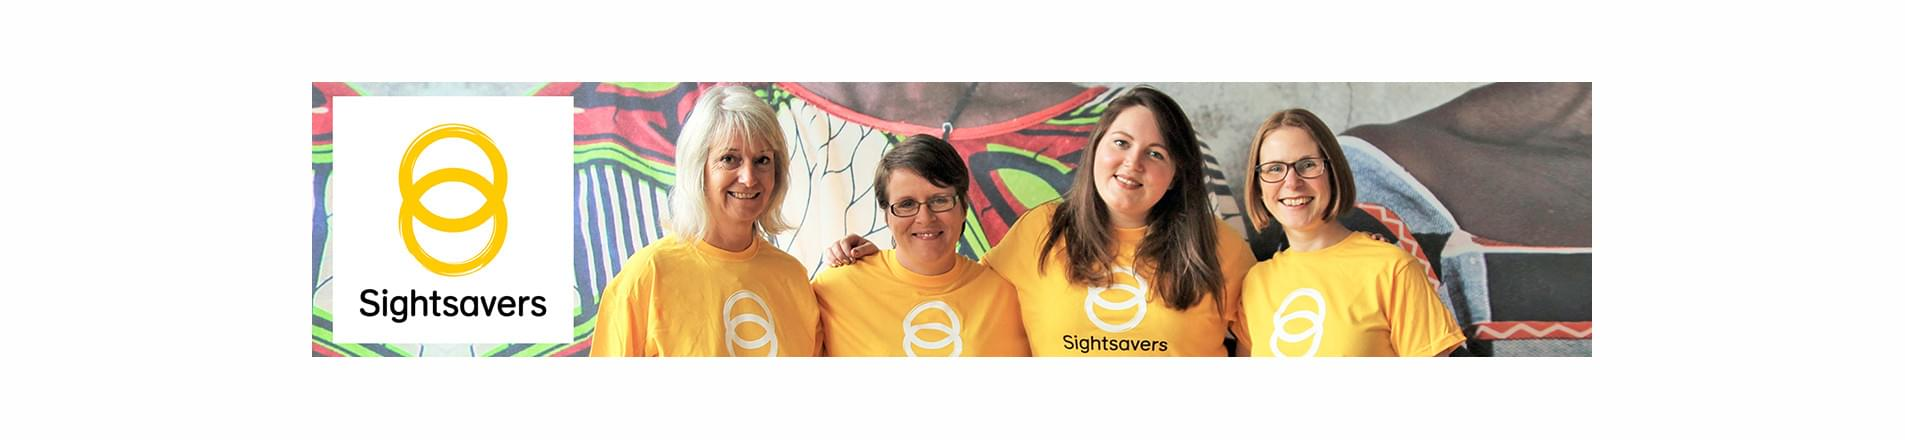 Four female Sightsaver employees